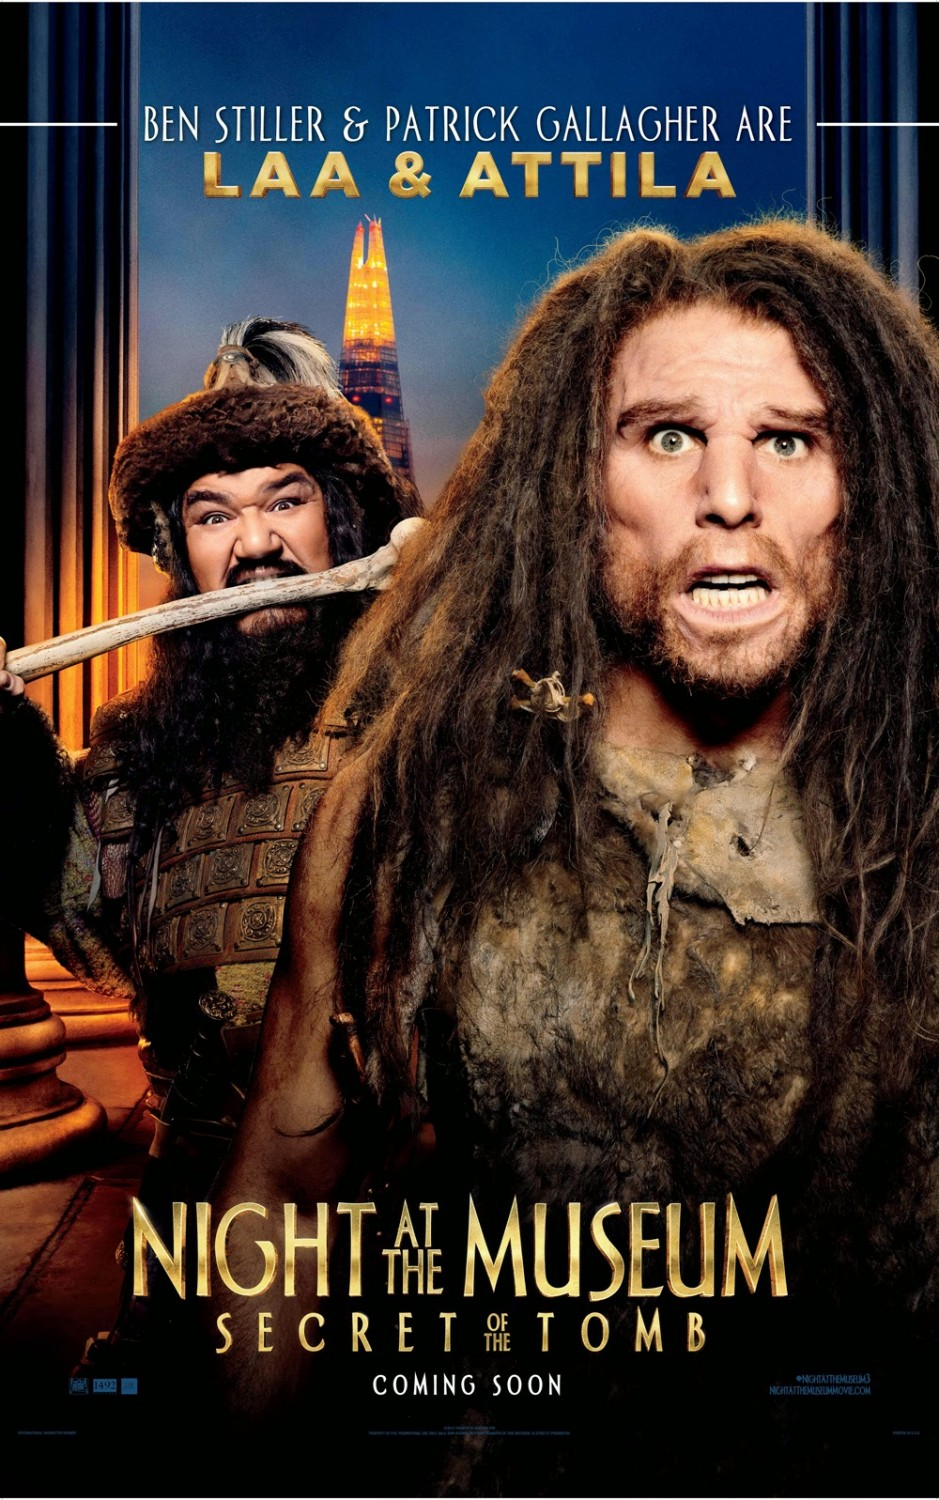 Night at the Museum Secret of the Tomb-Official Poster-17NOVEMBRO2014-07